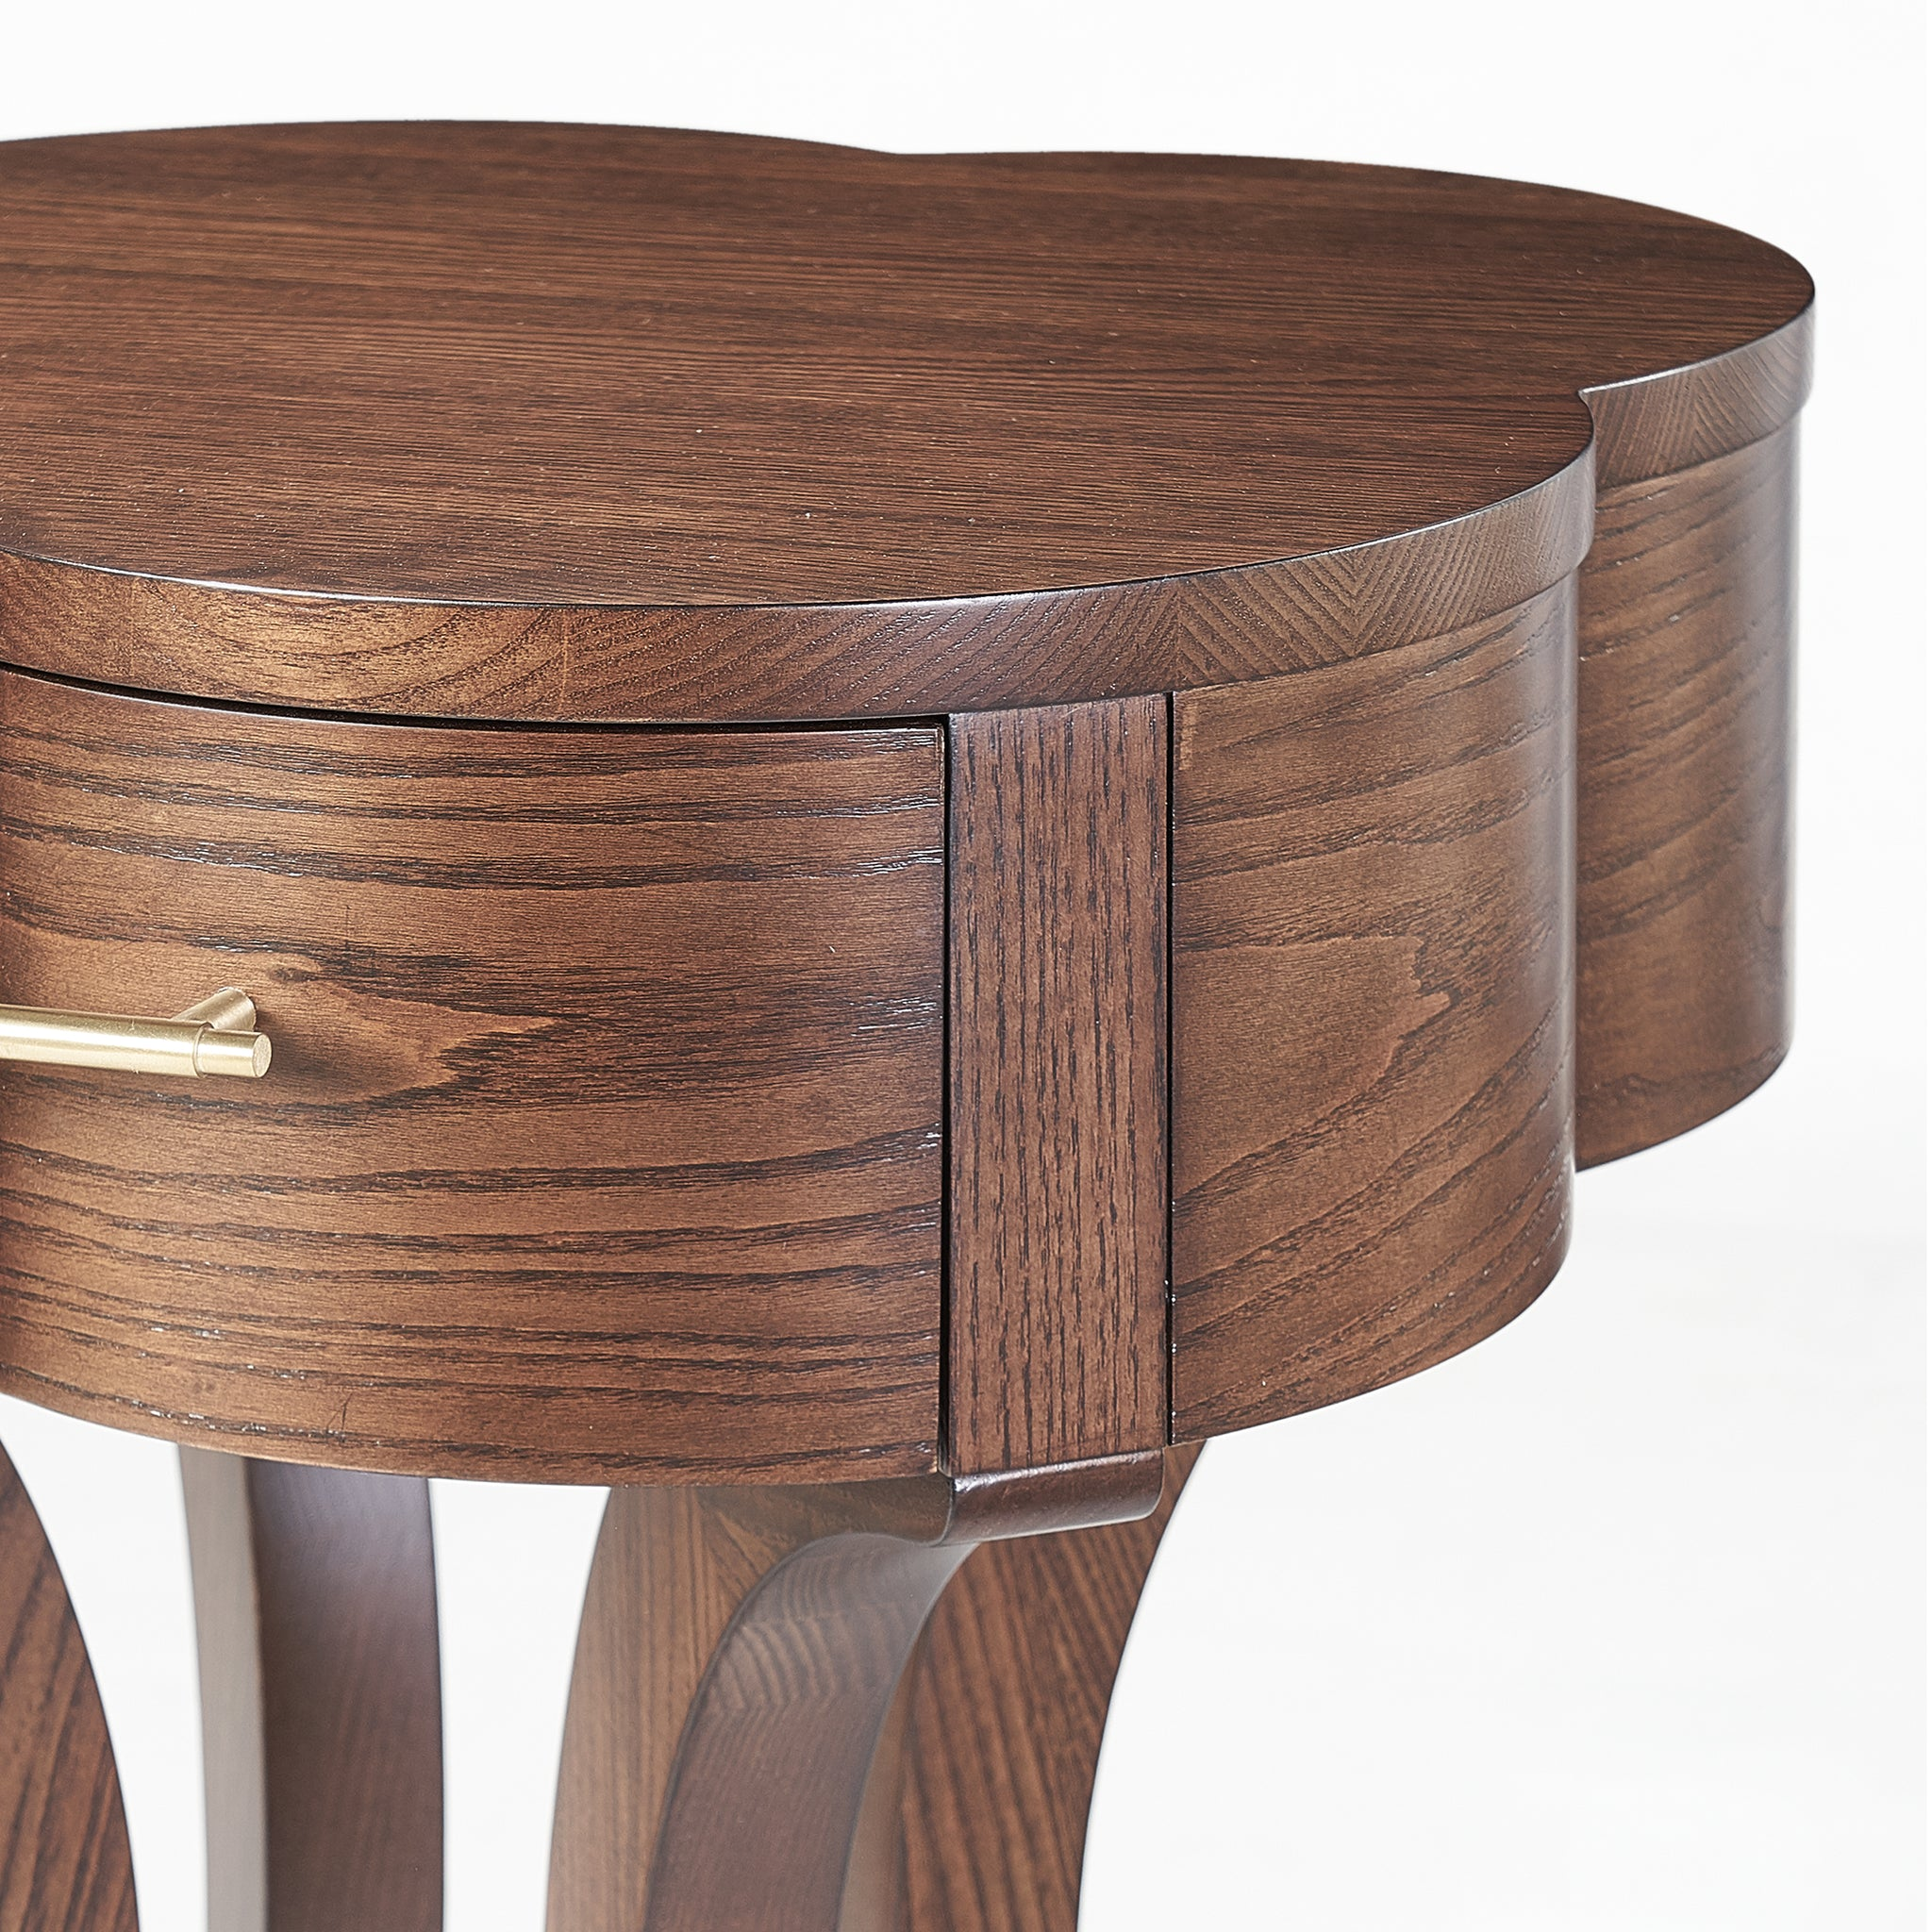 Lucky Lucas Ash wood and Brass Side Table - Chestnut Ash